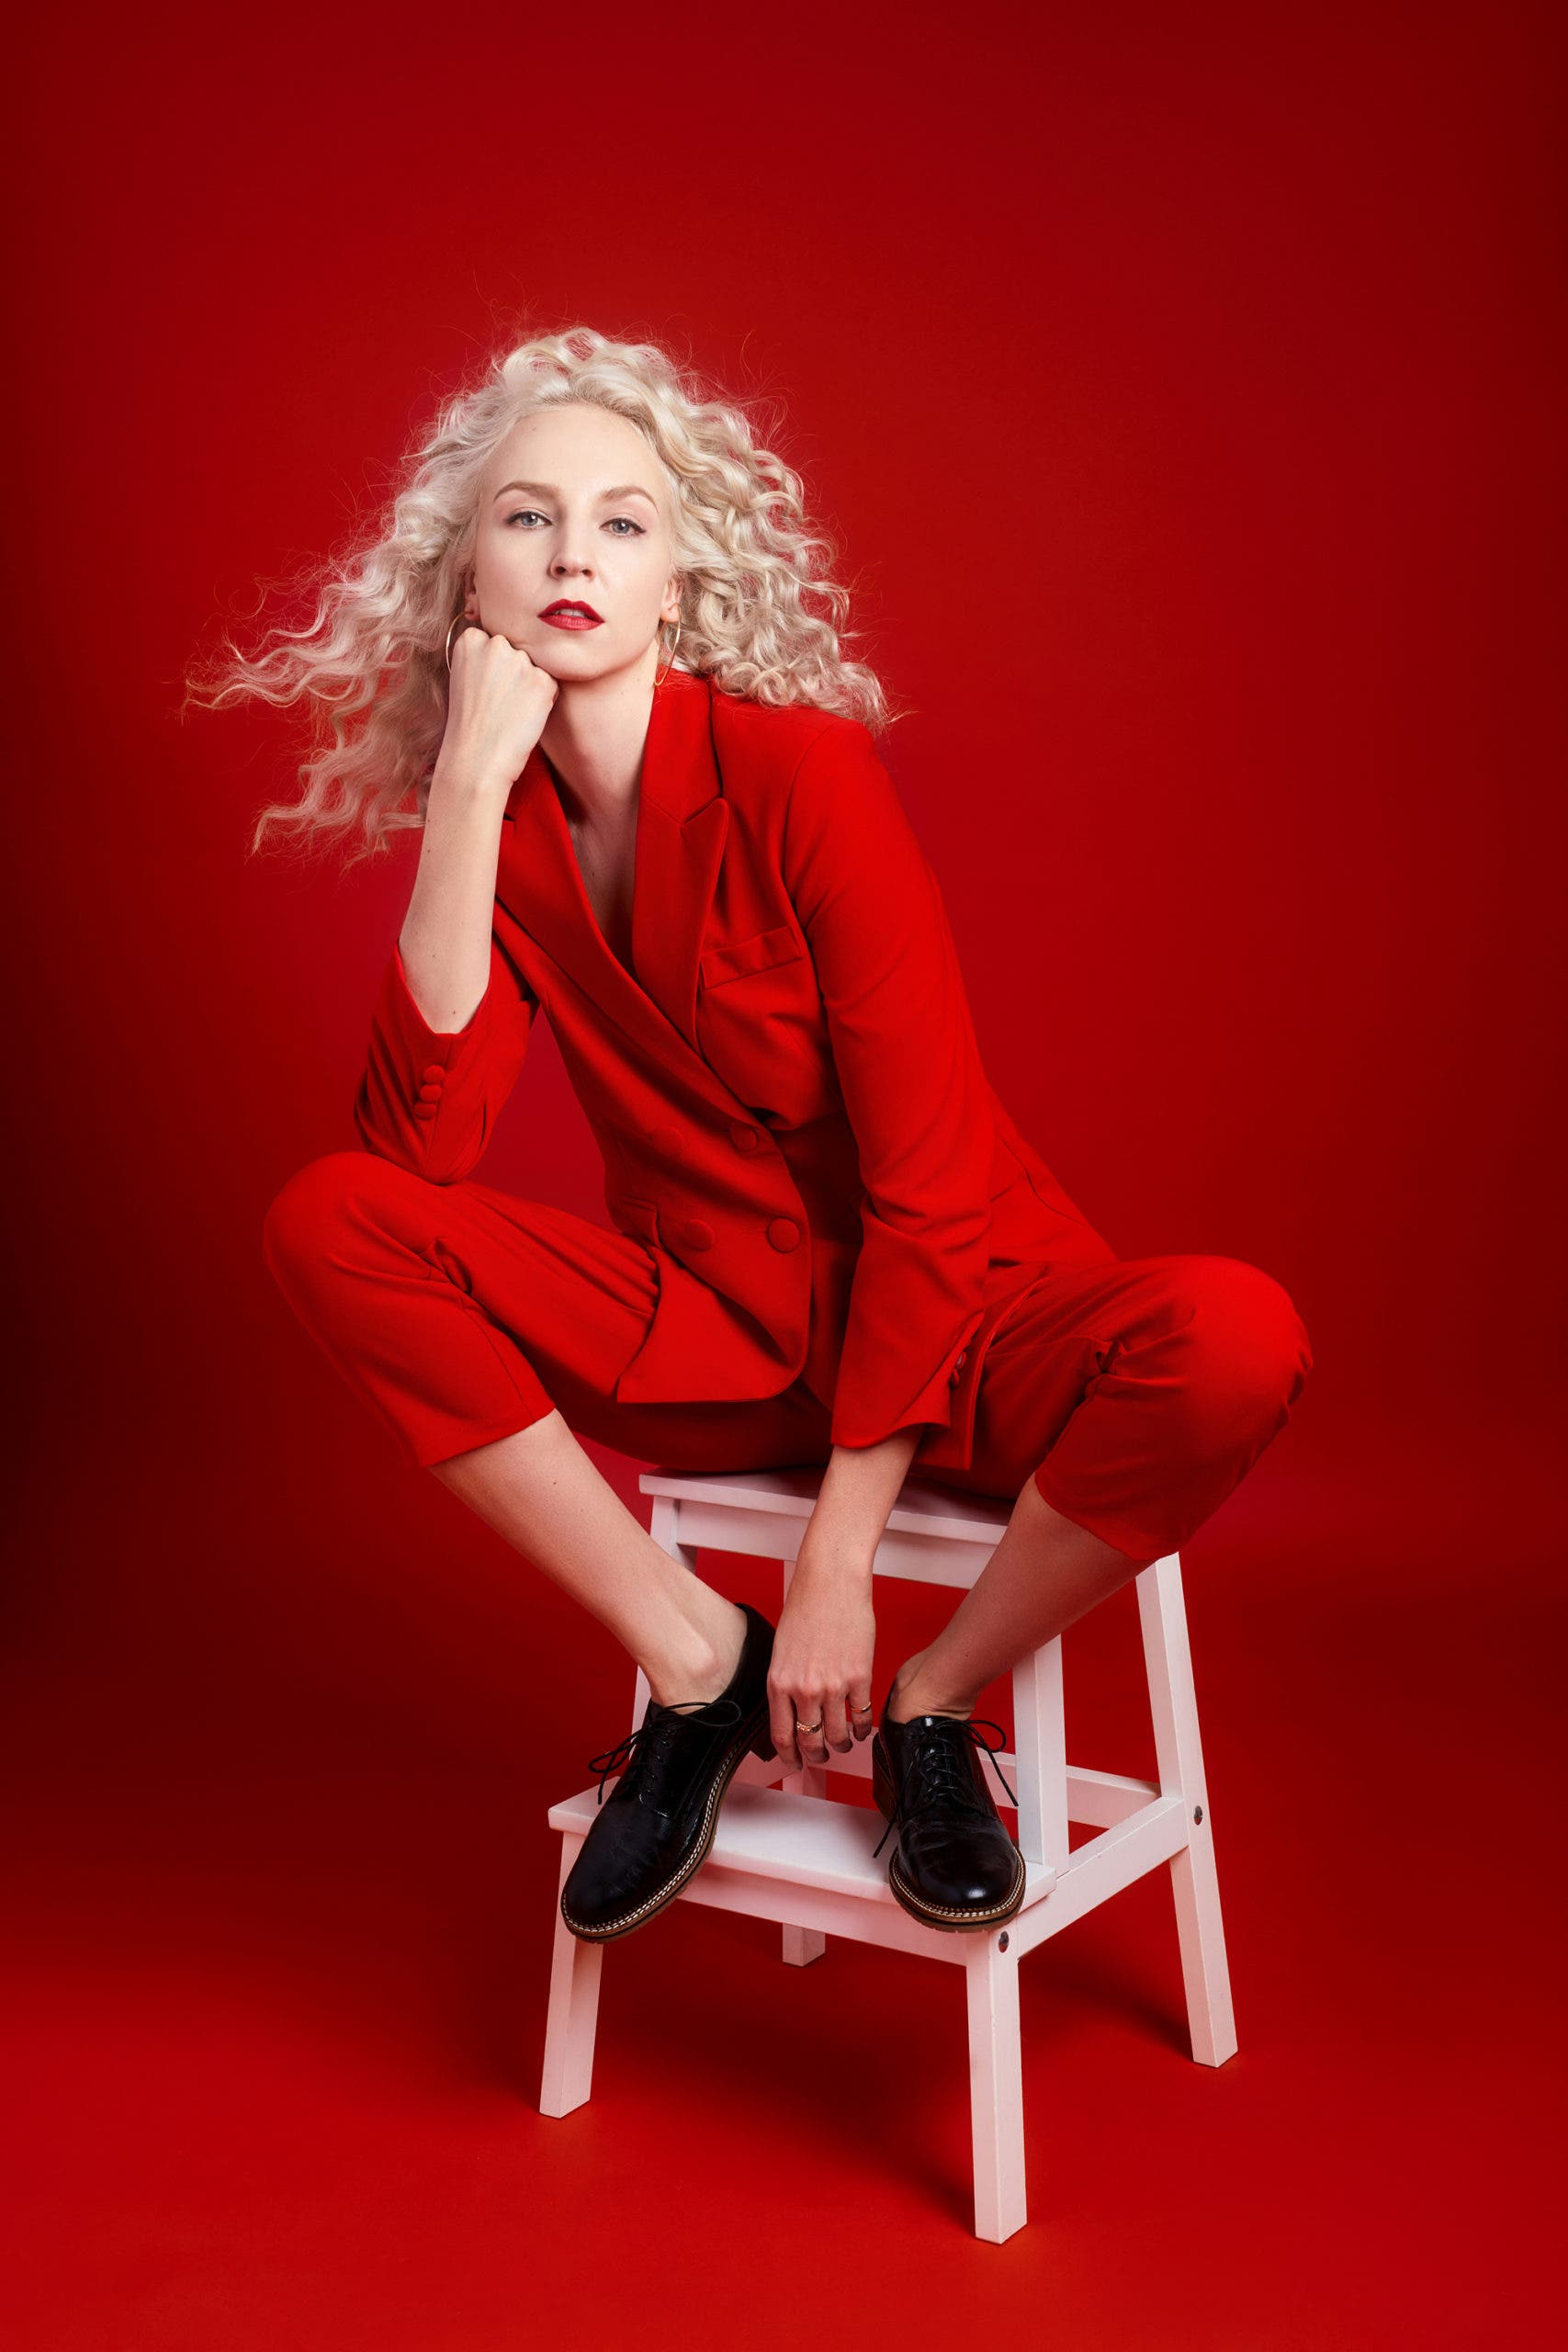 """Creating the Photograph: Claudia Paul's """"Red on Red"""""""